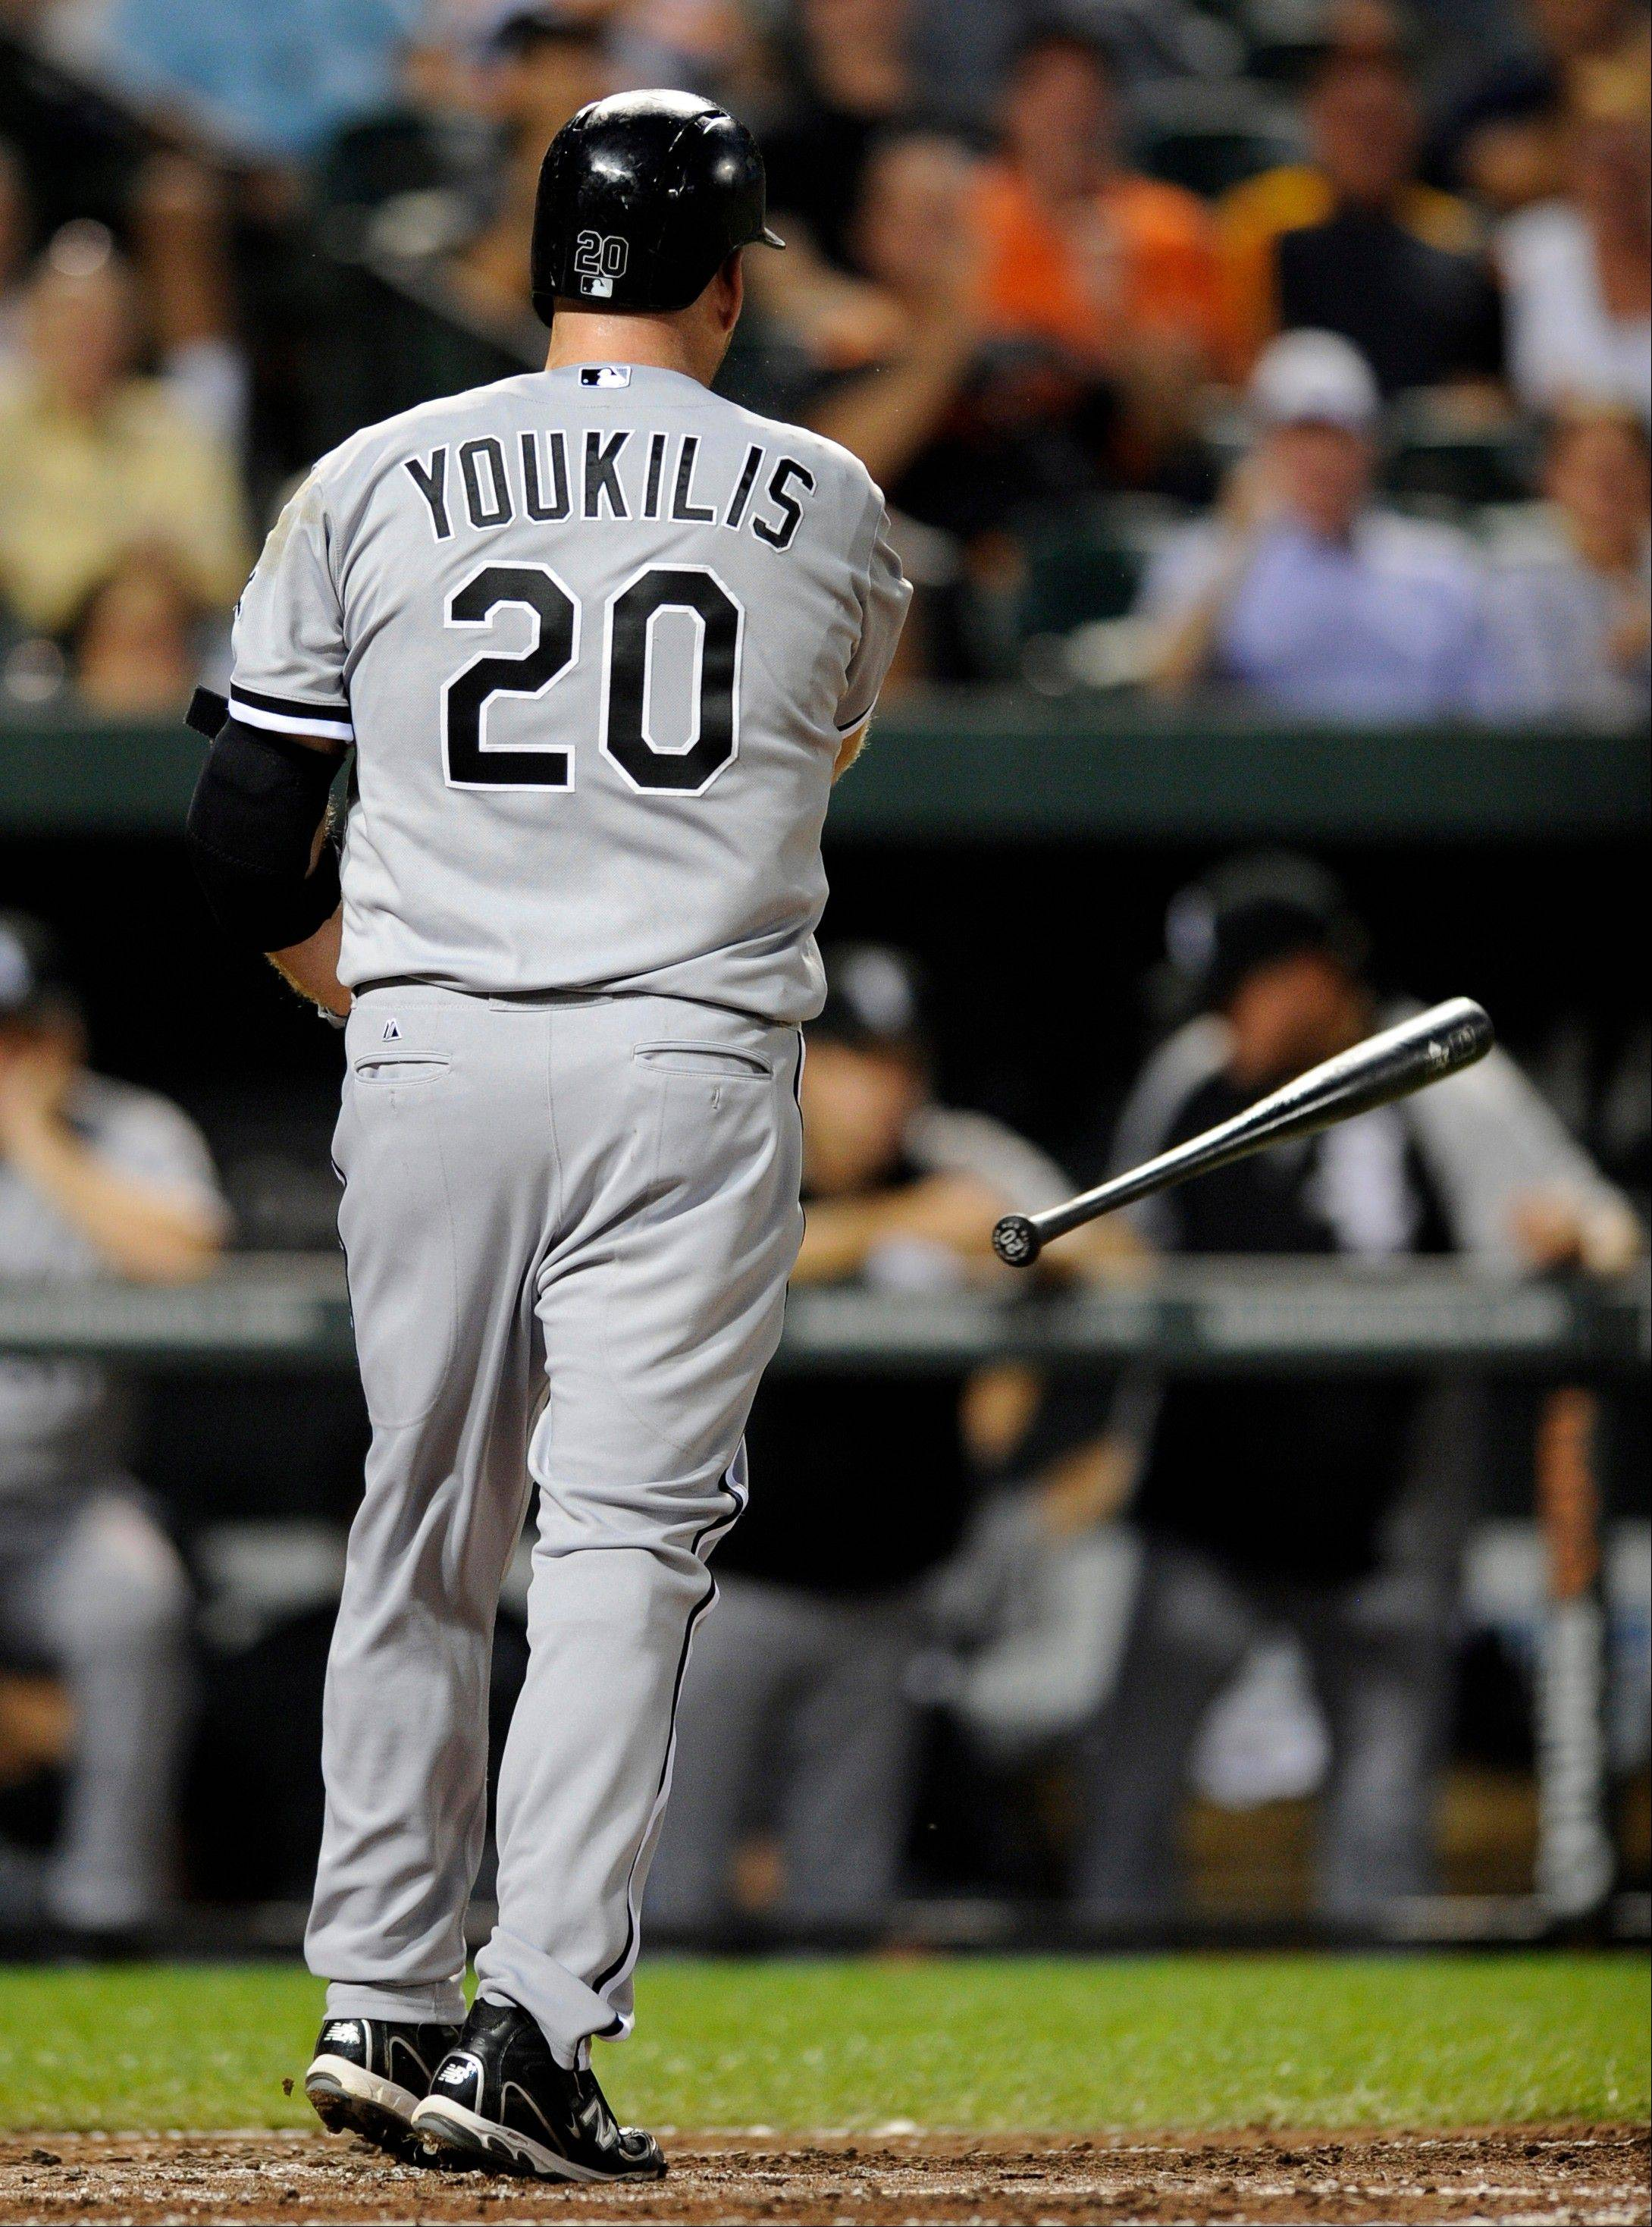 White Sox third baseman Kevin Youkilis throws his bat in frustration after striking out Monday against the Baltimore Orioles.